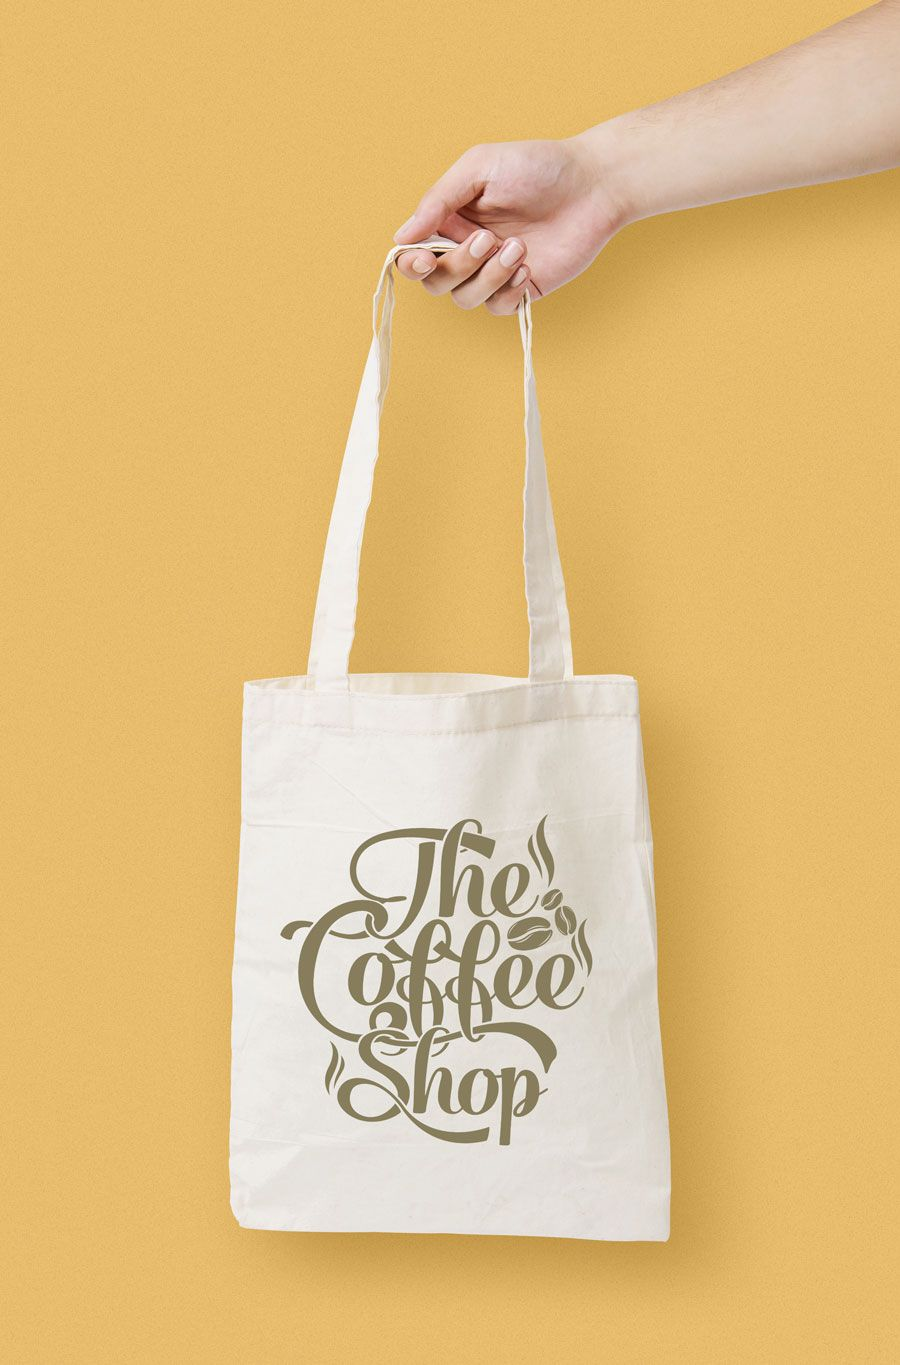 01b734b26 Free Canvas Tote Bag Mockup | Free CU/PU Mock Ups/ Digital ...